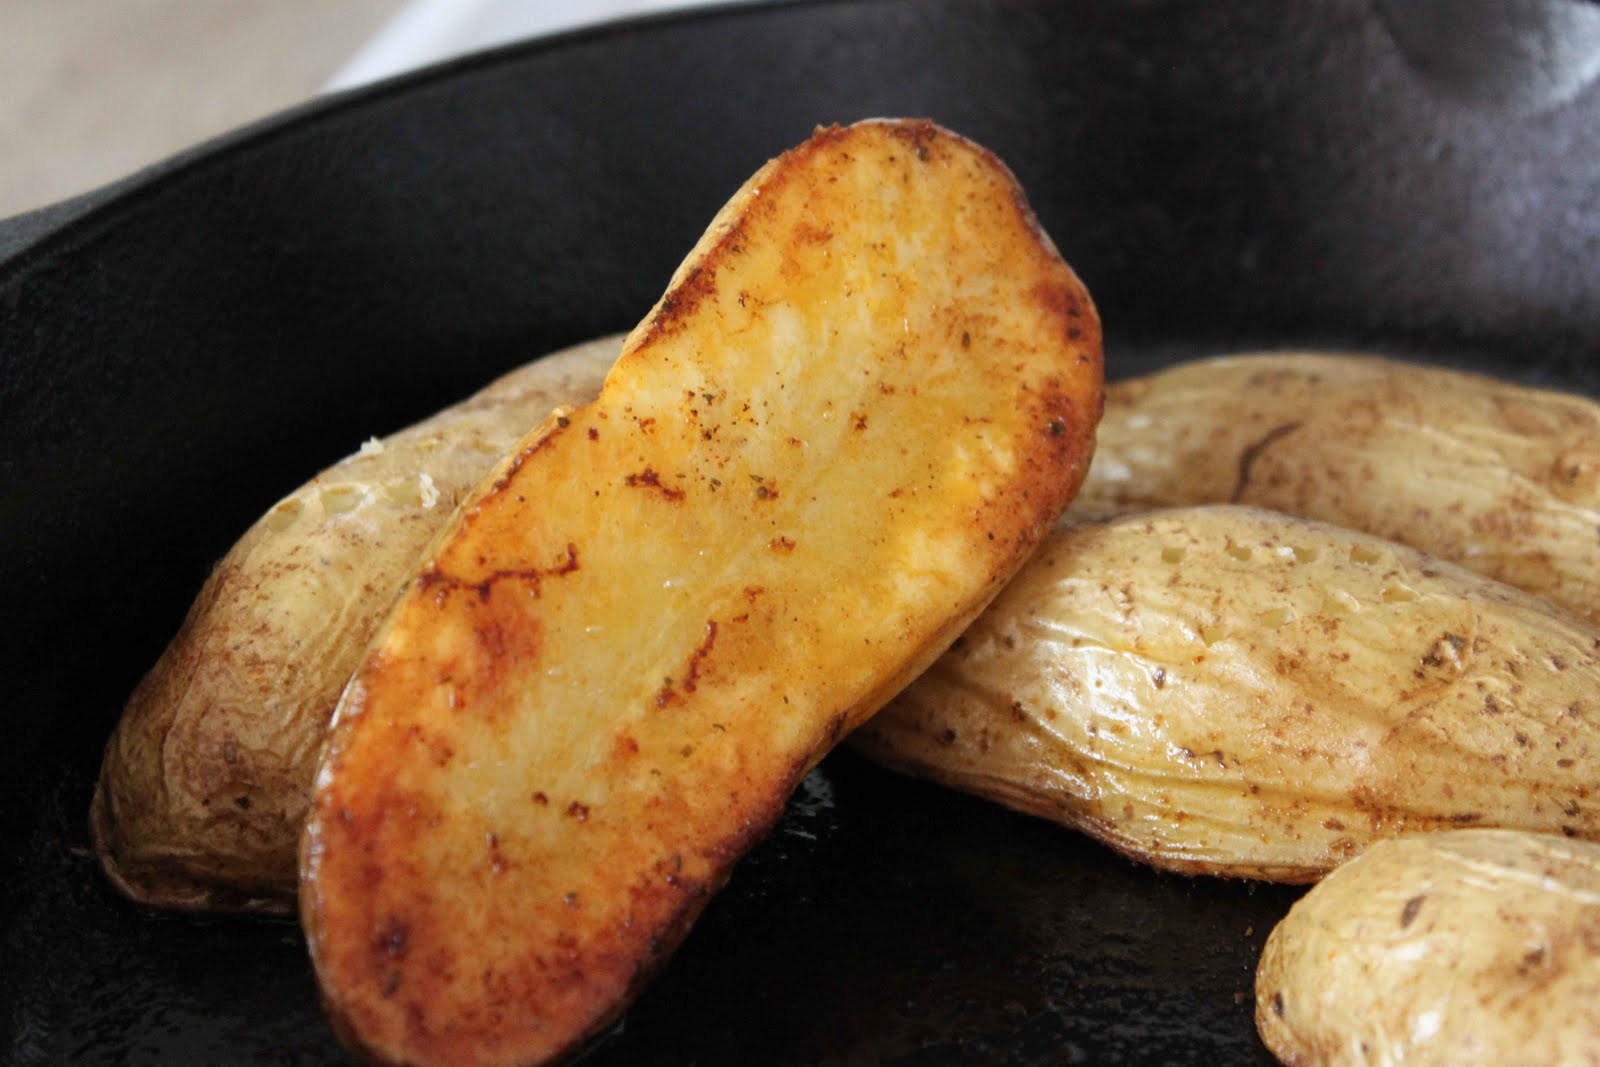 Stacey scraps and cooks cast iron skillet baked potatoes for Different ways to cook russet potatoes